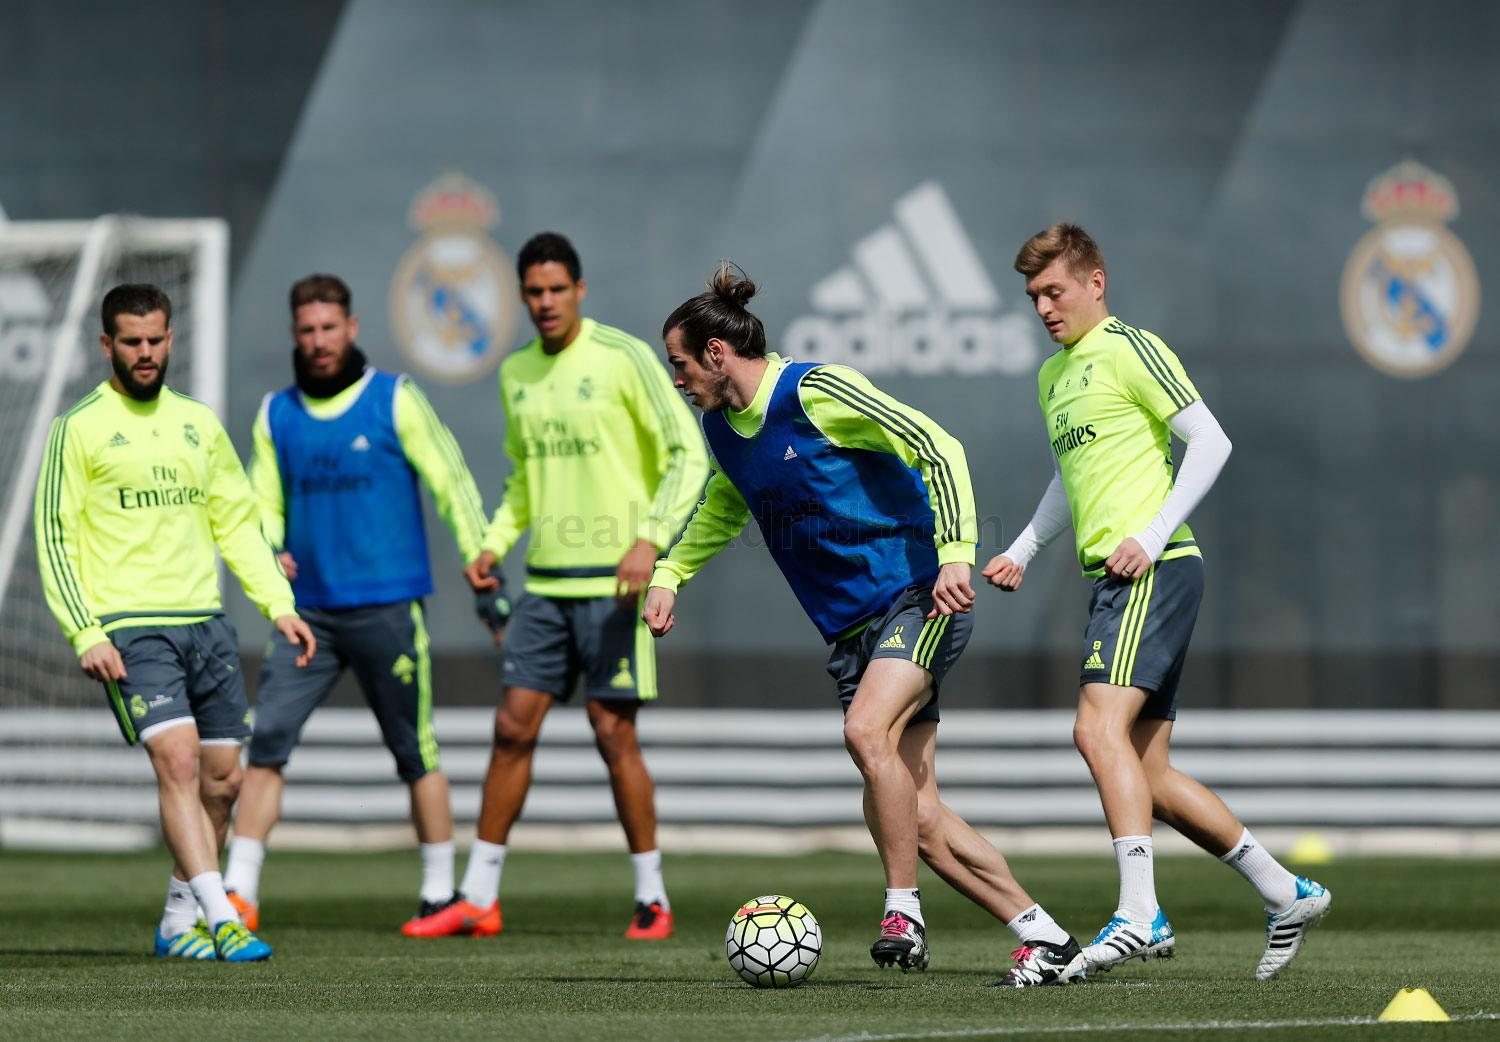 Real Madrid - Entrenamiento del Real Madrid - 31-03-2016